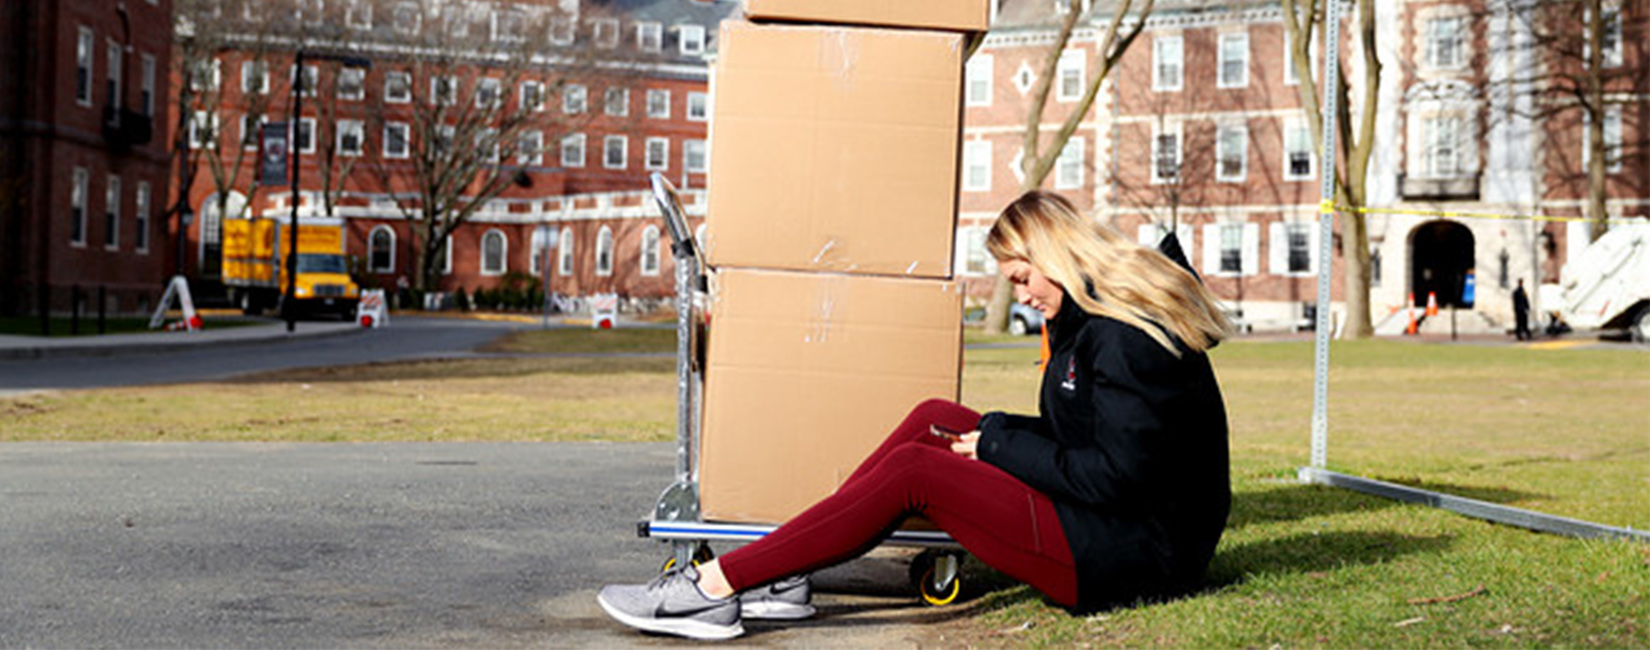 Student on phone sitting next to boxes.